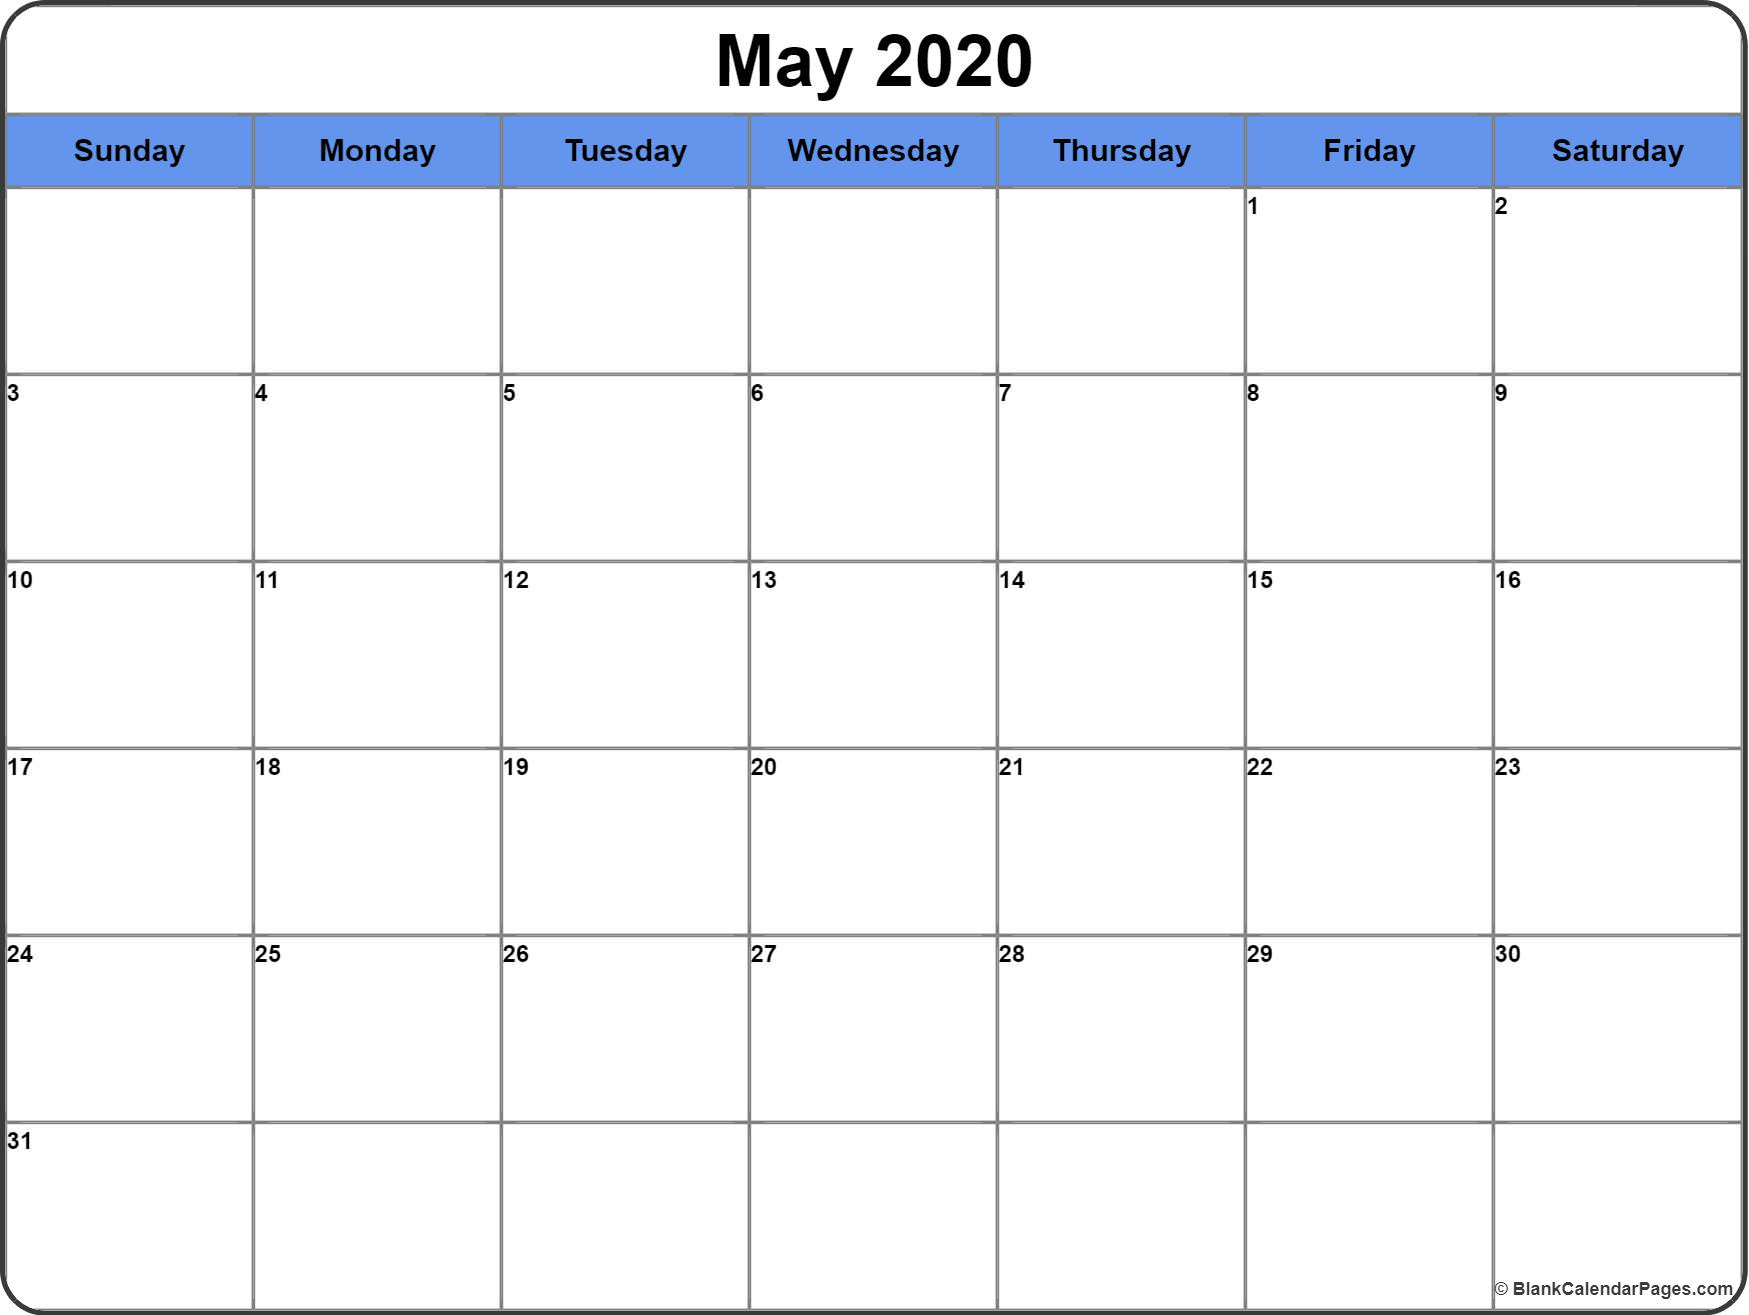 May 2020 Calendar | Free Printable Monthly Calendars with Printable 2020 Calendars No Download